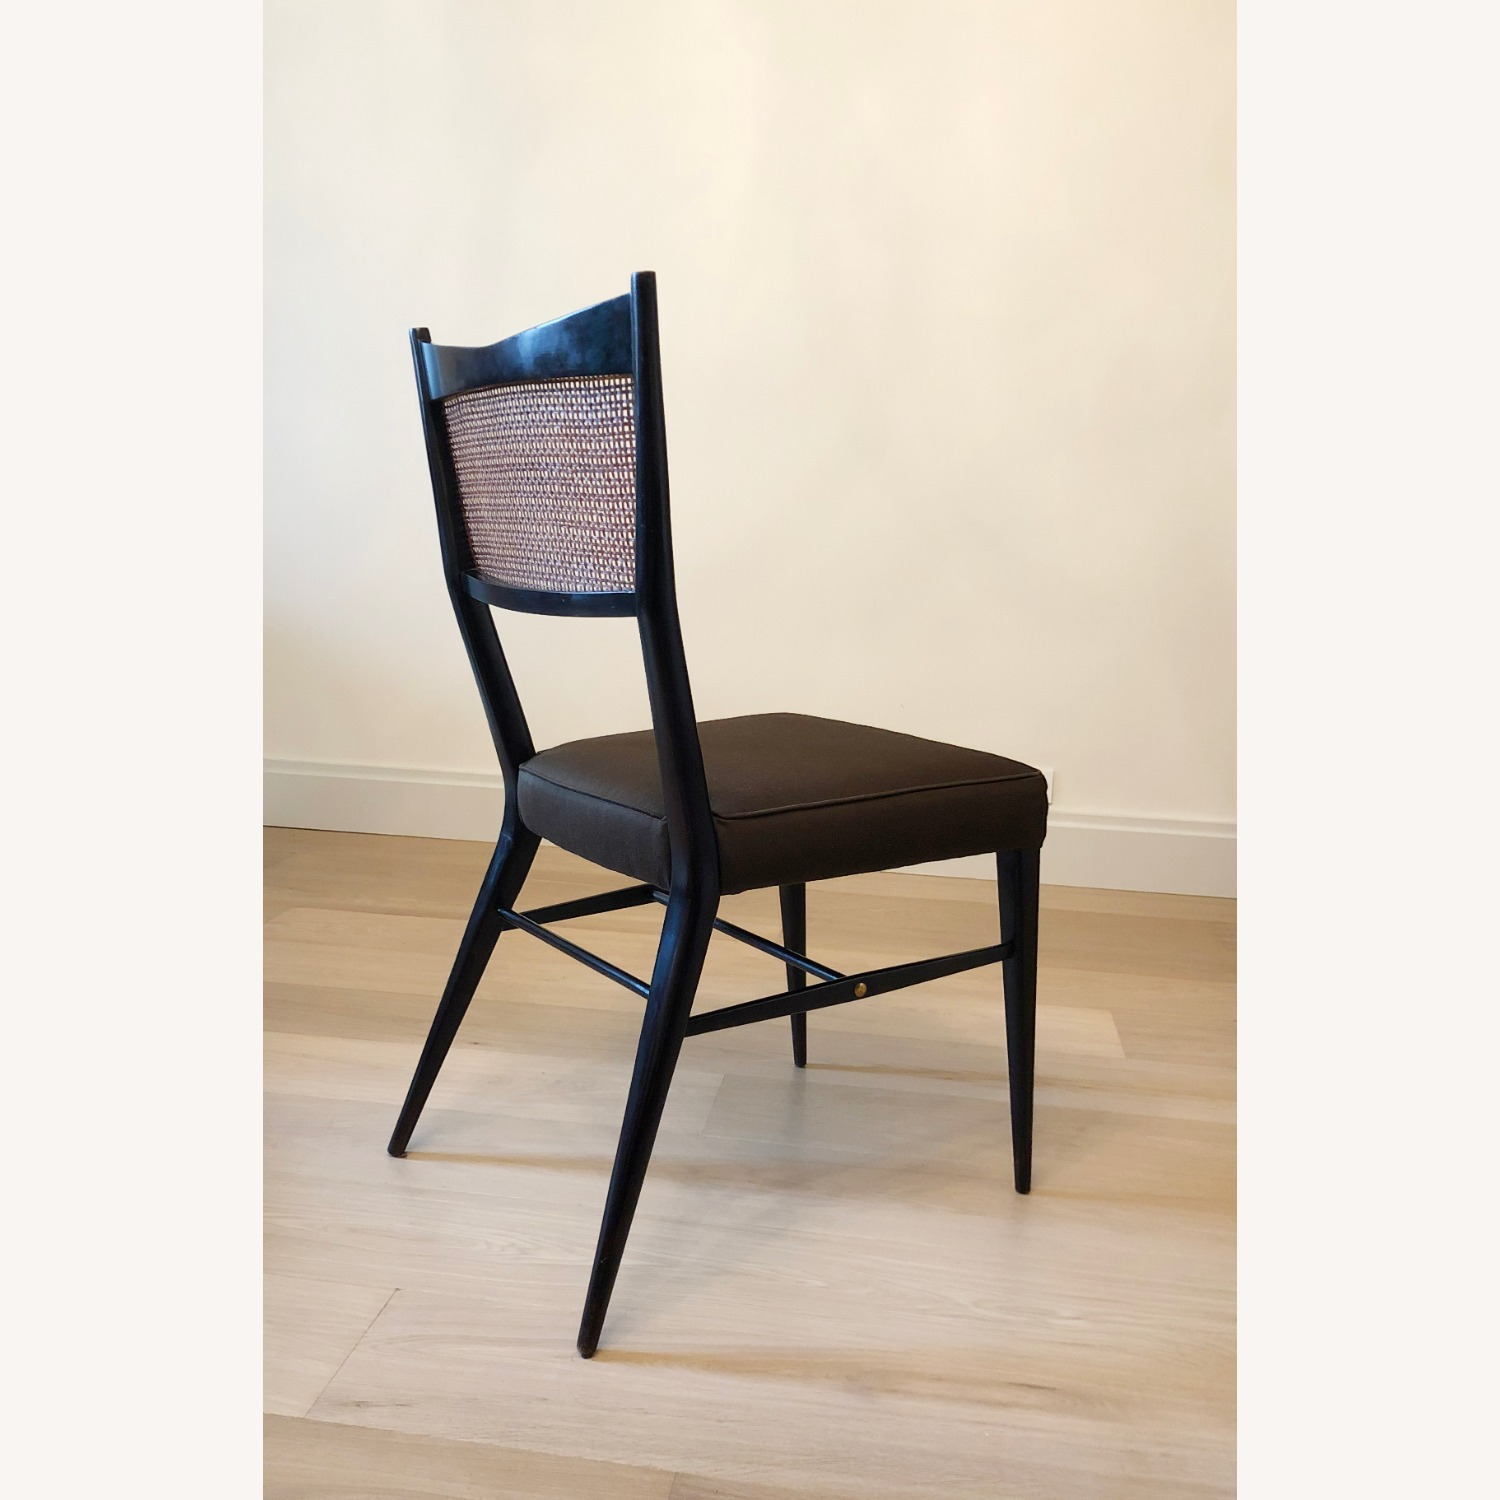 Paul McCobb Irwin Collection 4 Dining Chairs - image-4